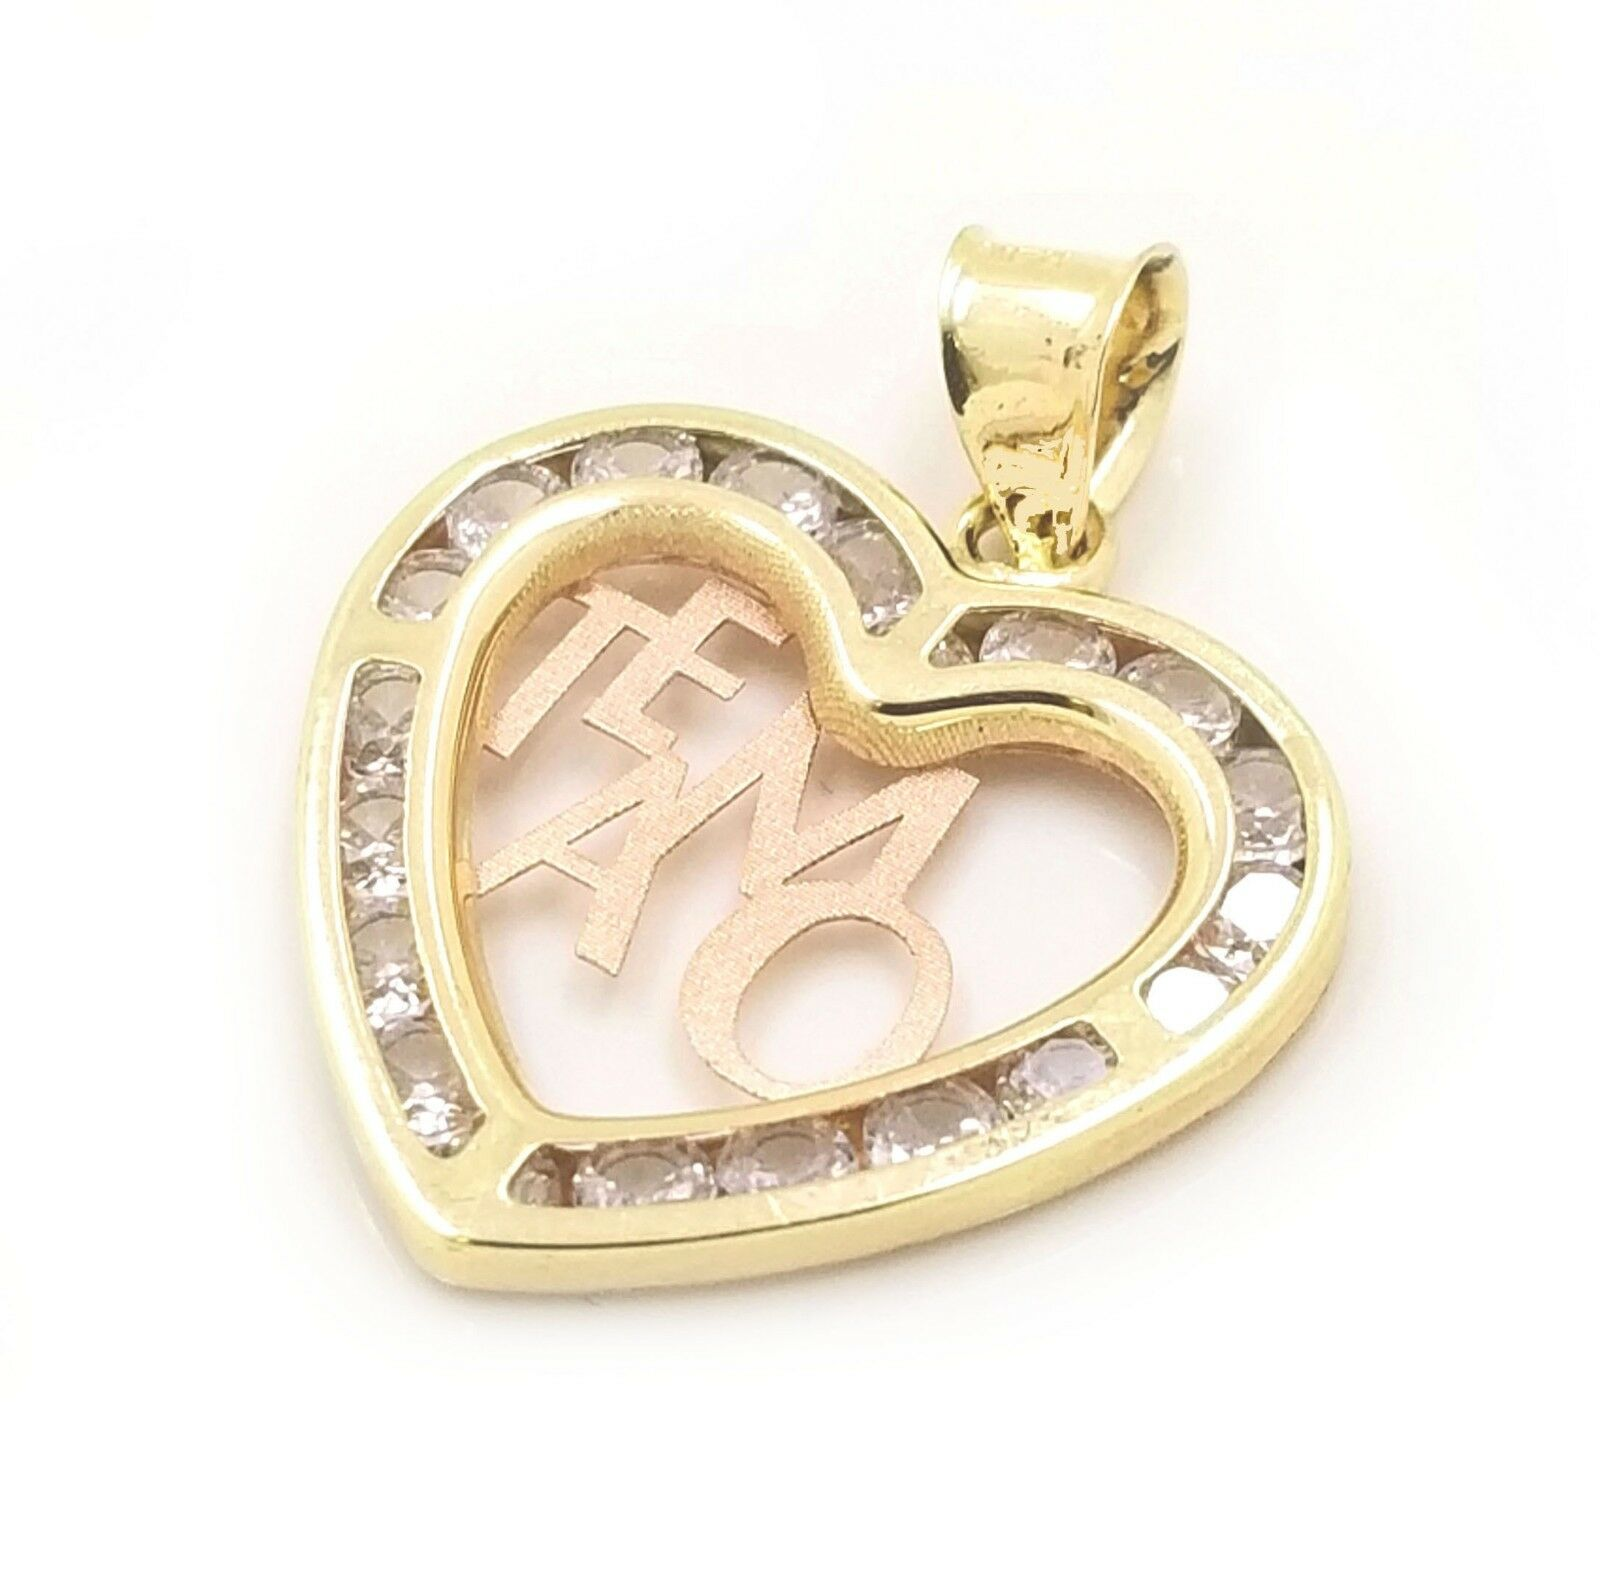 Real 10k Yellow gold Singapore Chain & 10k Tricolor gold Heart-TE AMO Charm